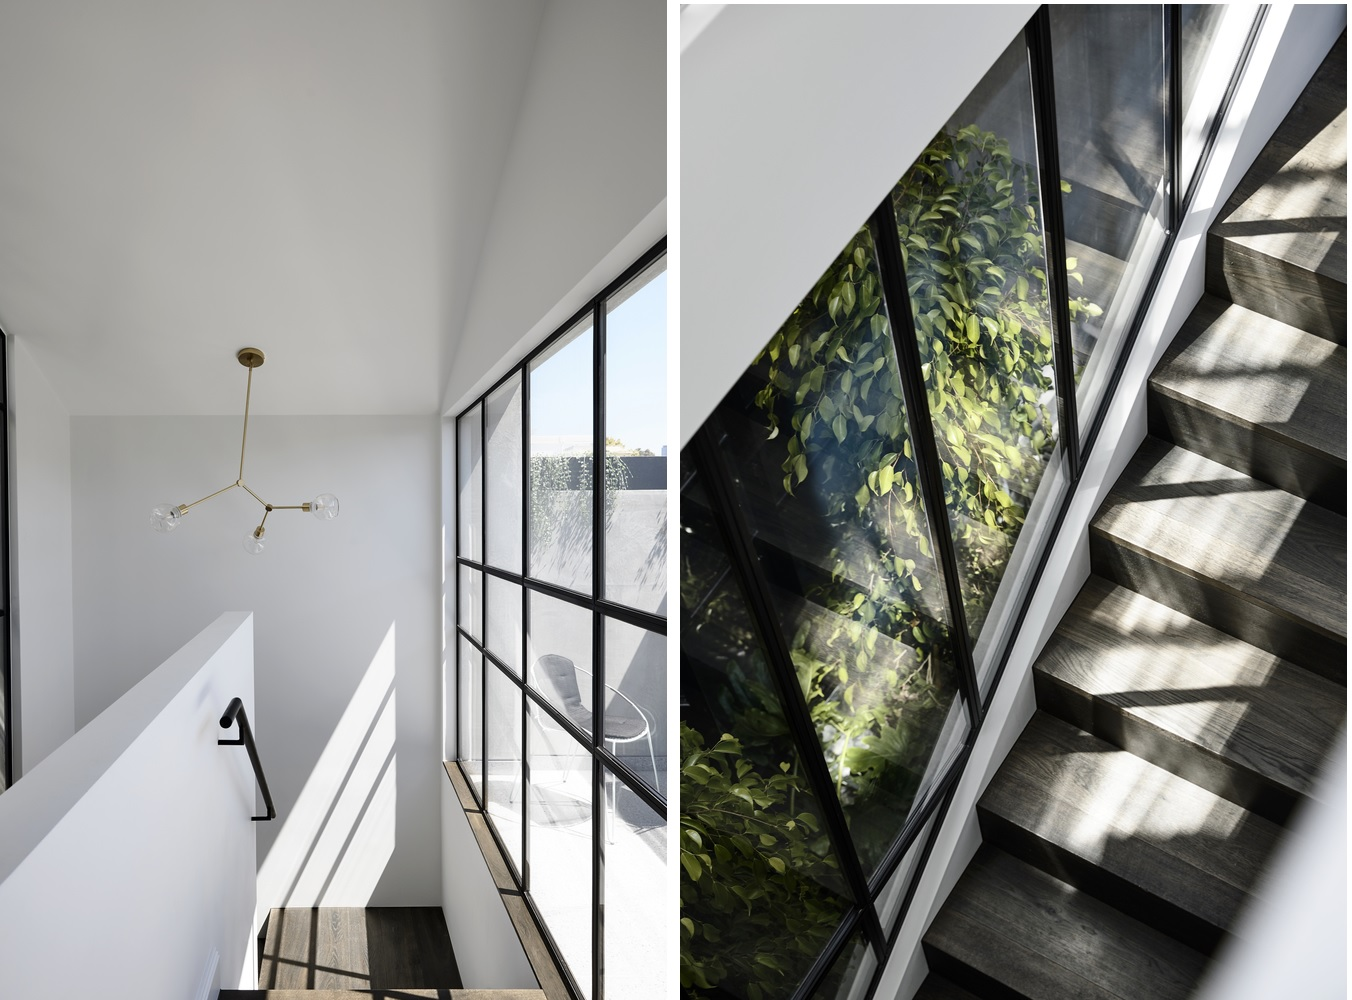 The atrium helps to bring more light into the house and to visually connect certain spaces